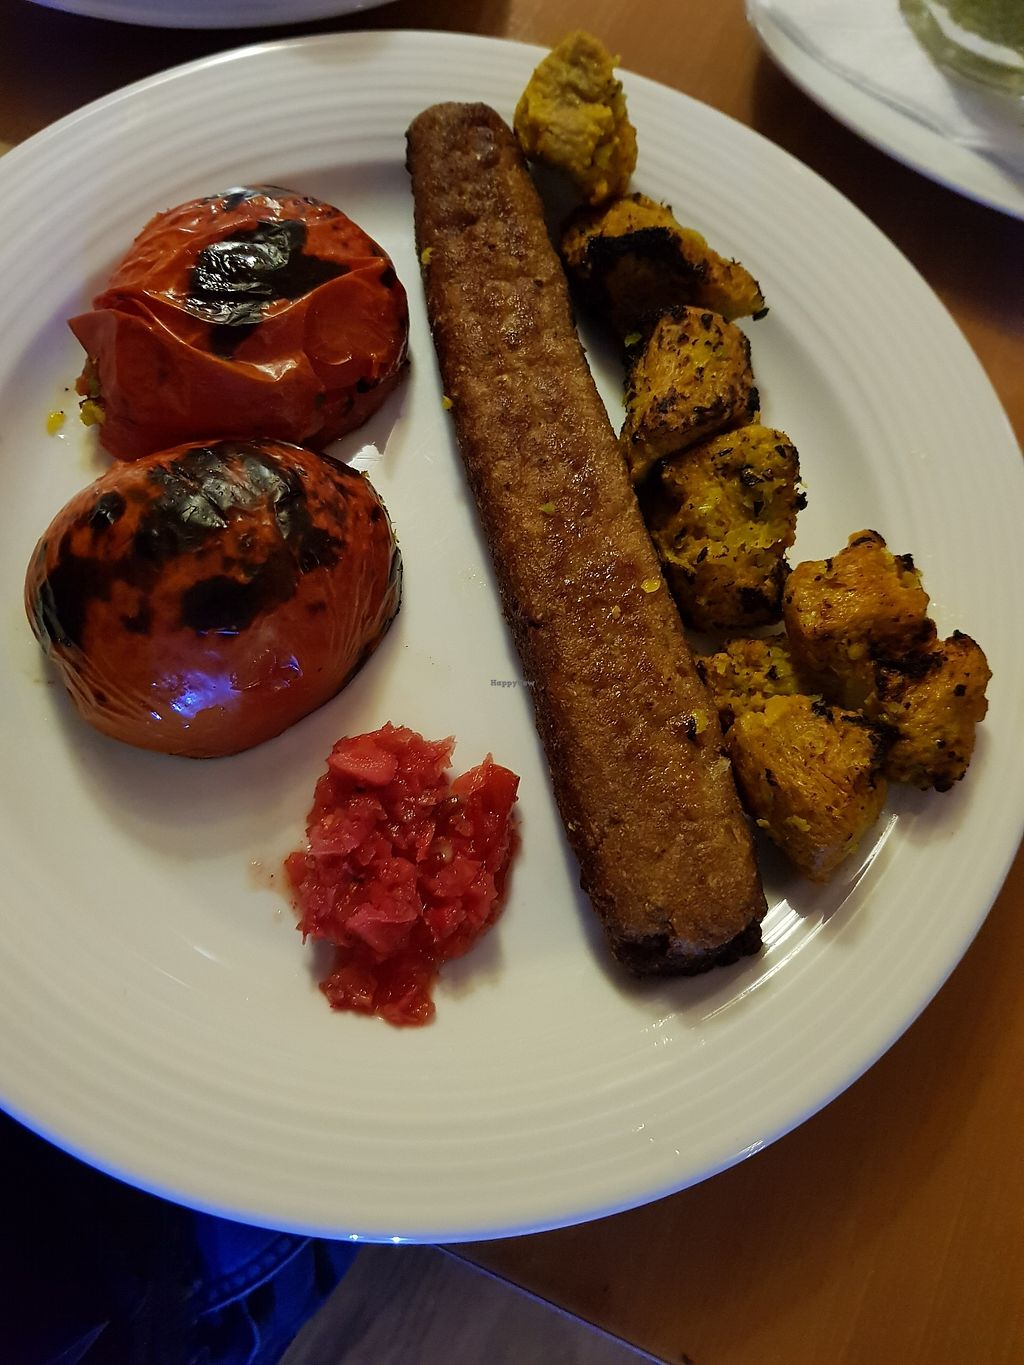 """Photo of Zamin  by <a href=""""/members/profile/Mirage"""">Mirage</a> <br/>Vegan kebab <br/> January 5, 2018  - <a href='/contact/abuse/image/24618/343114'>Report</a>"""